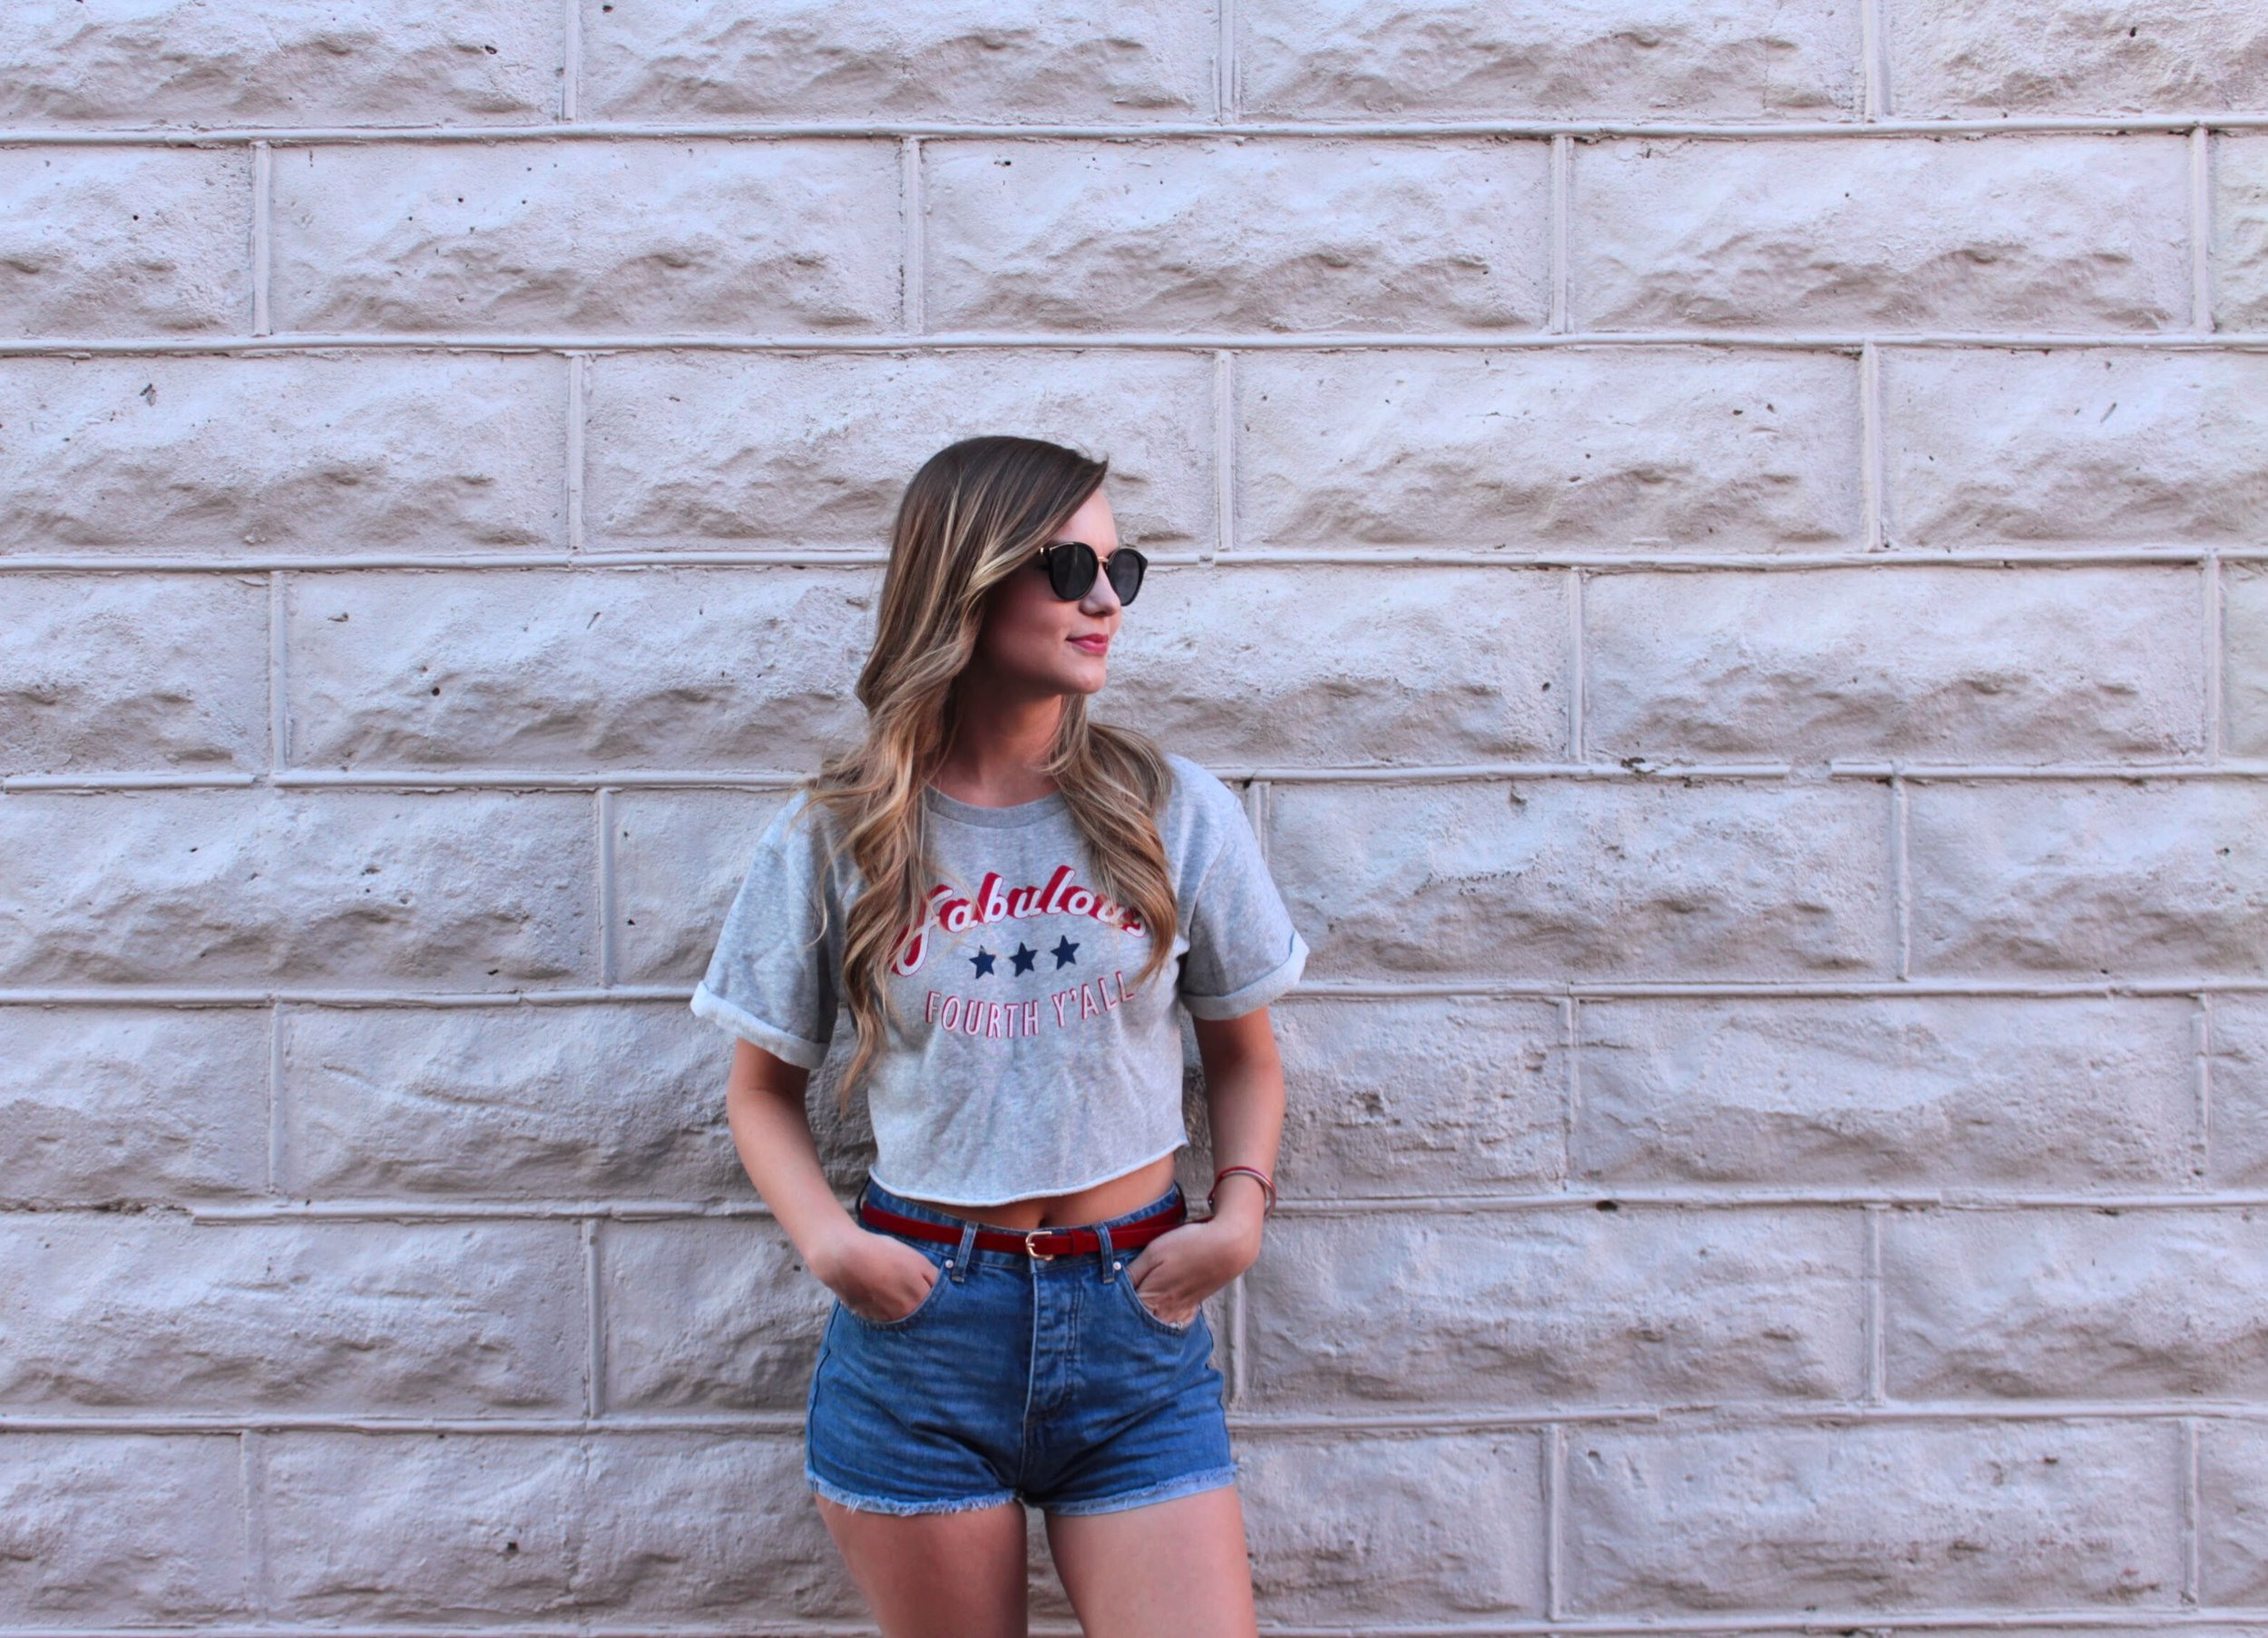 Summer Staples: Sunglasses and Denim Shorts